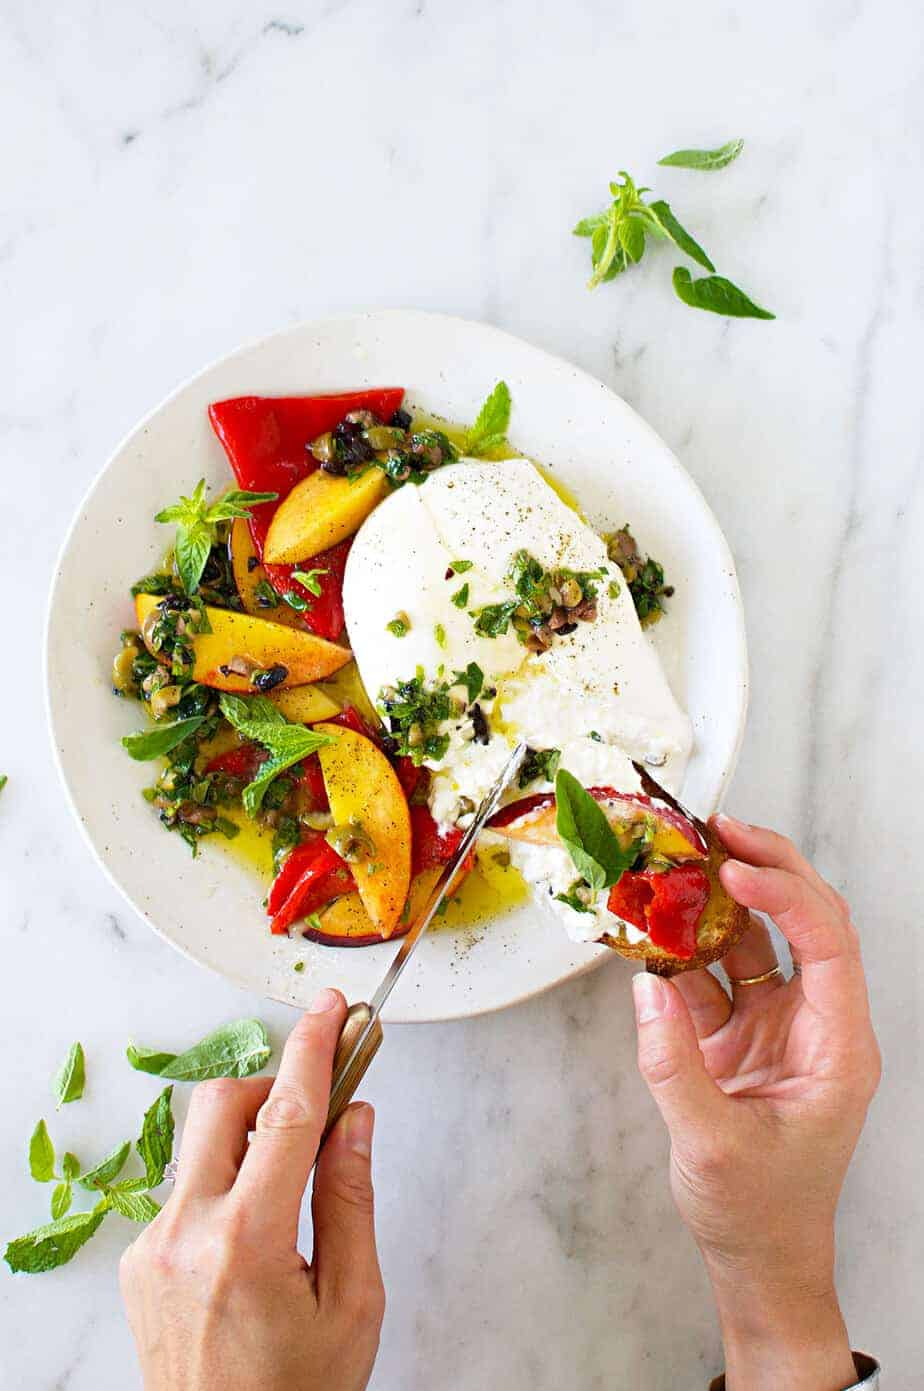 Burrata Appetizer with Mediterranean Honey Herb Oil, Nectarines + Roasted Peppers recipe (via thepigandquill.com)